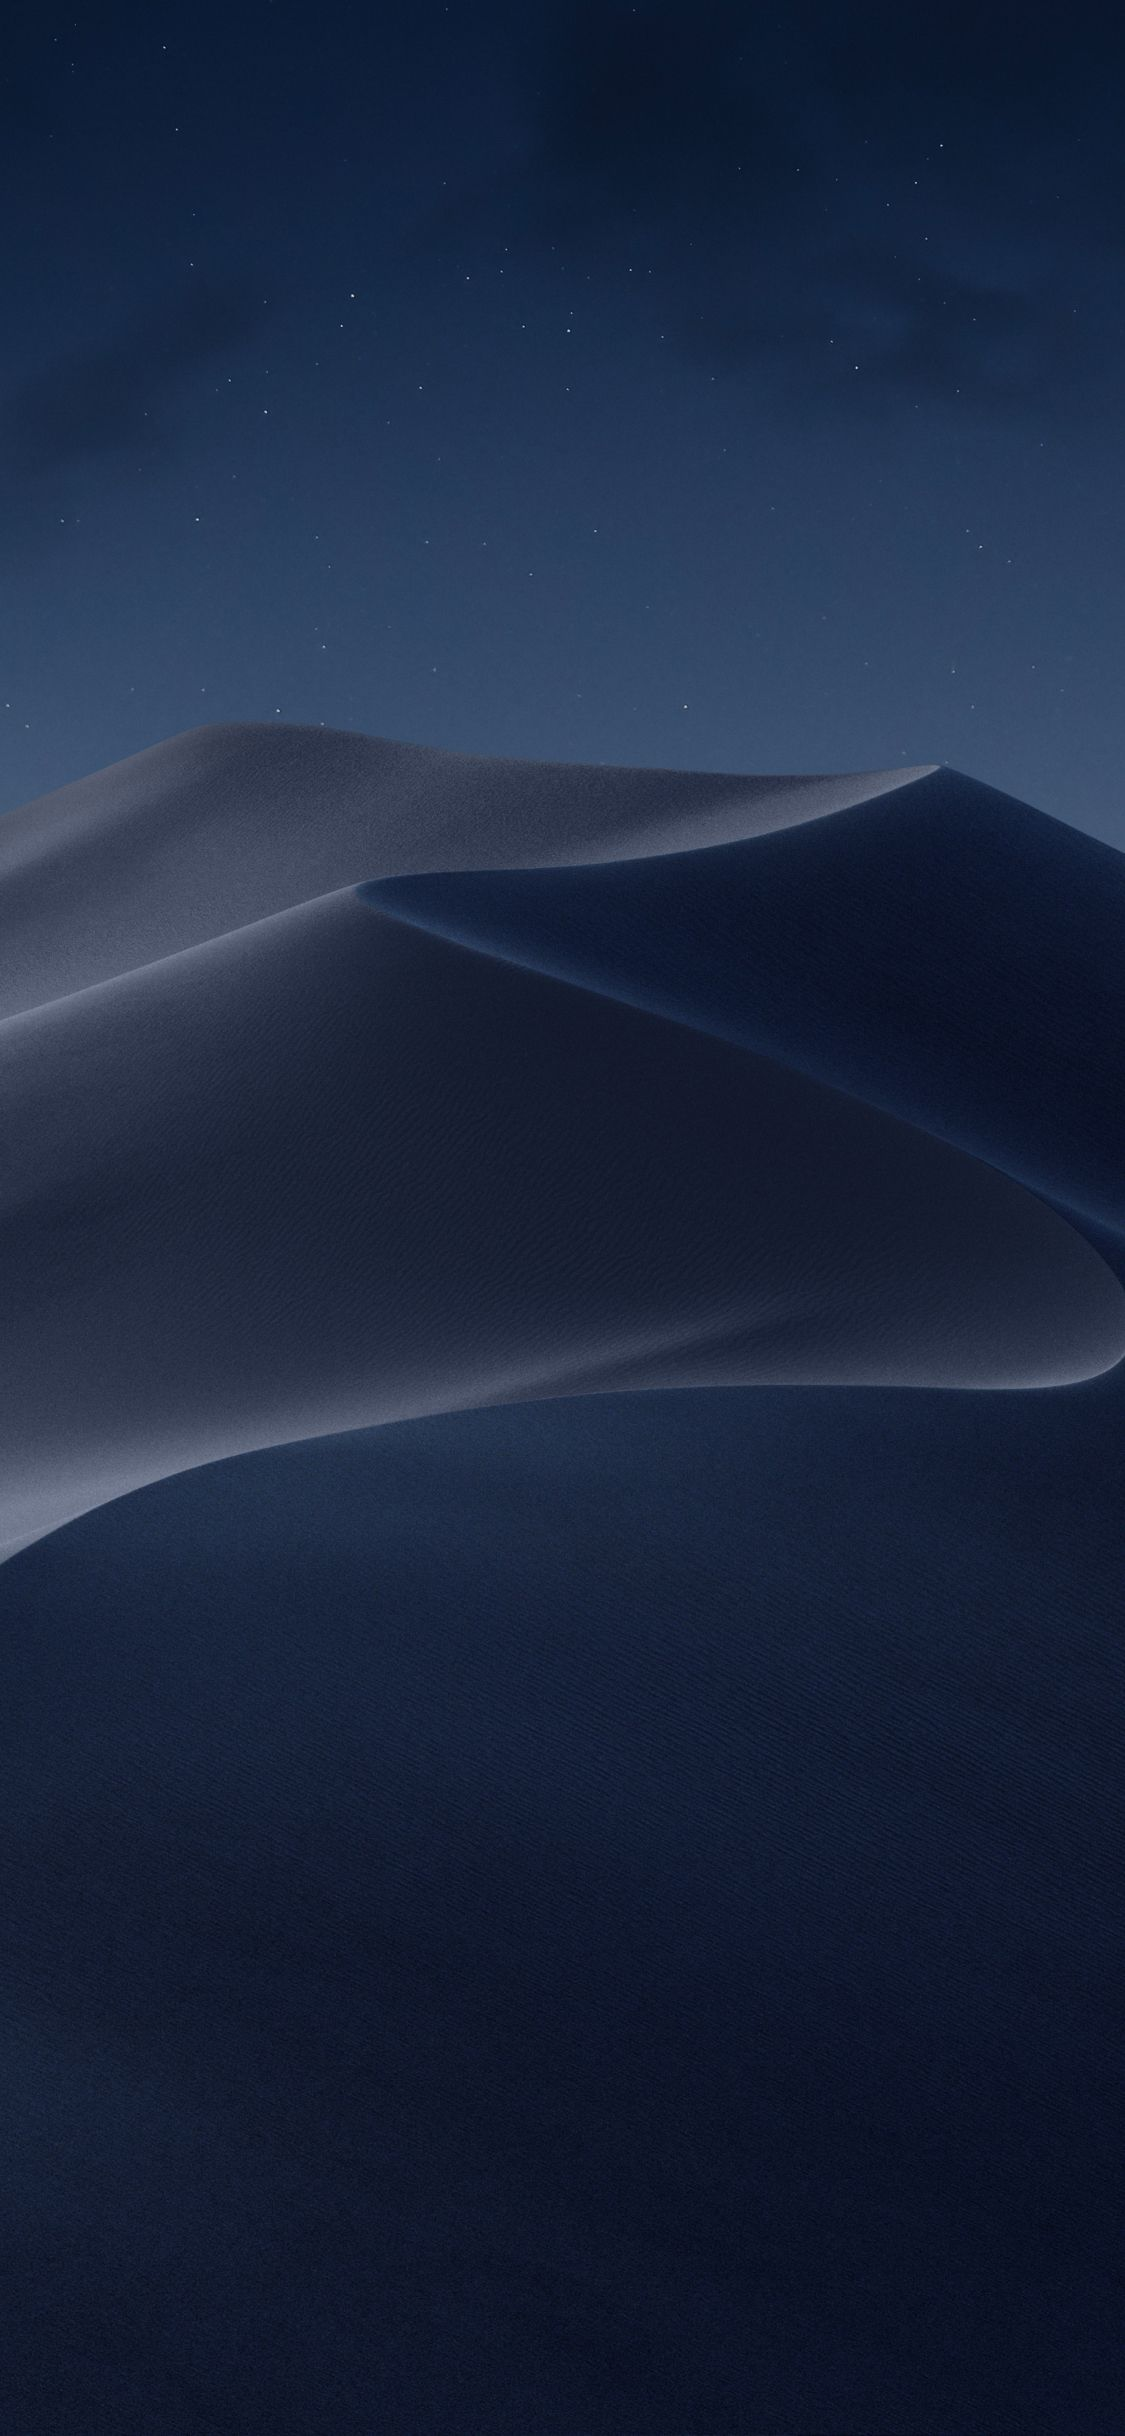 Macos Mojave Wallpapers For Desktop And Iphone Papel De Parede